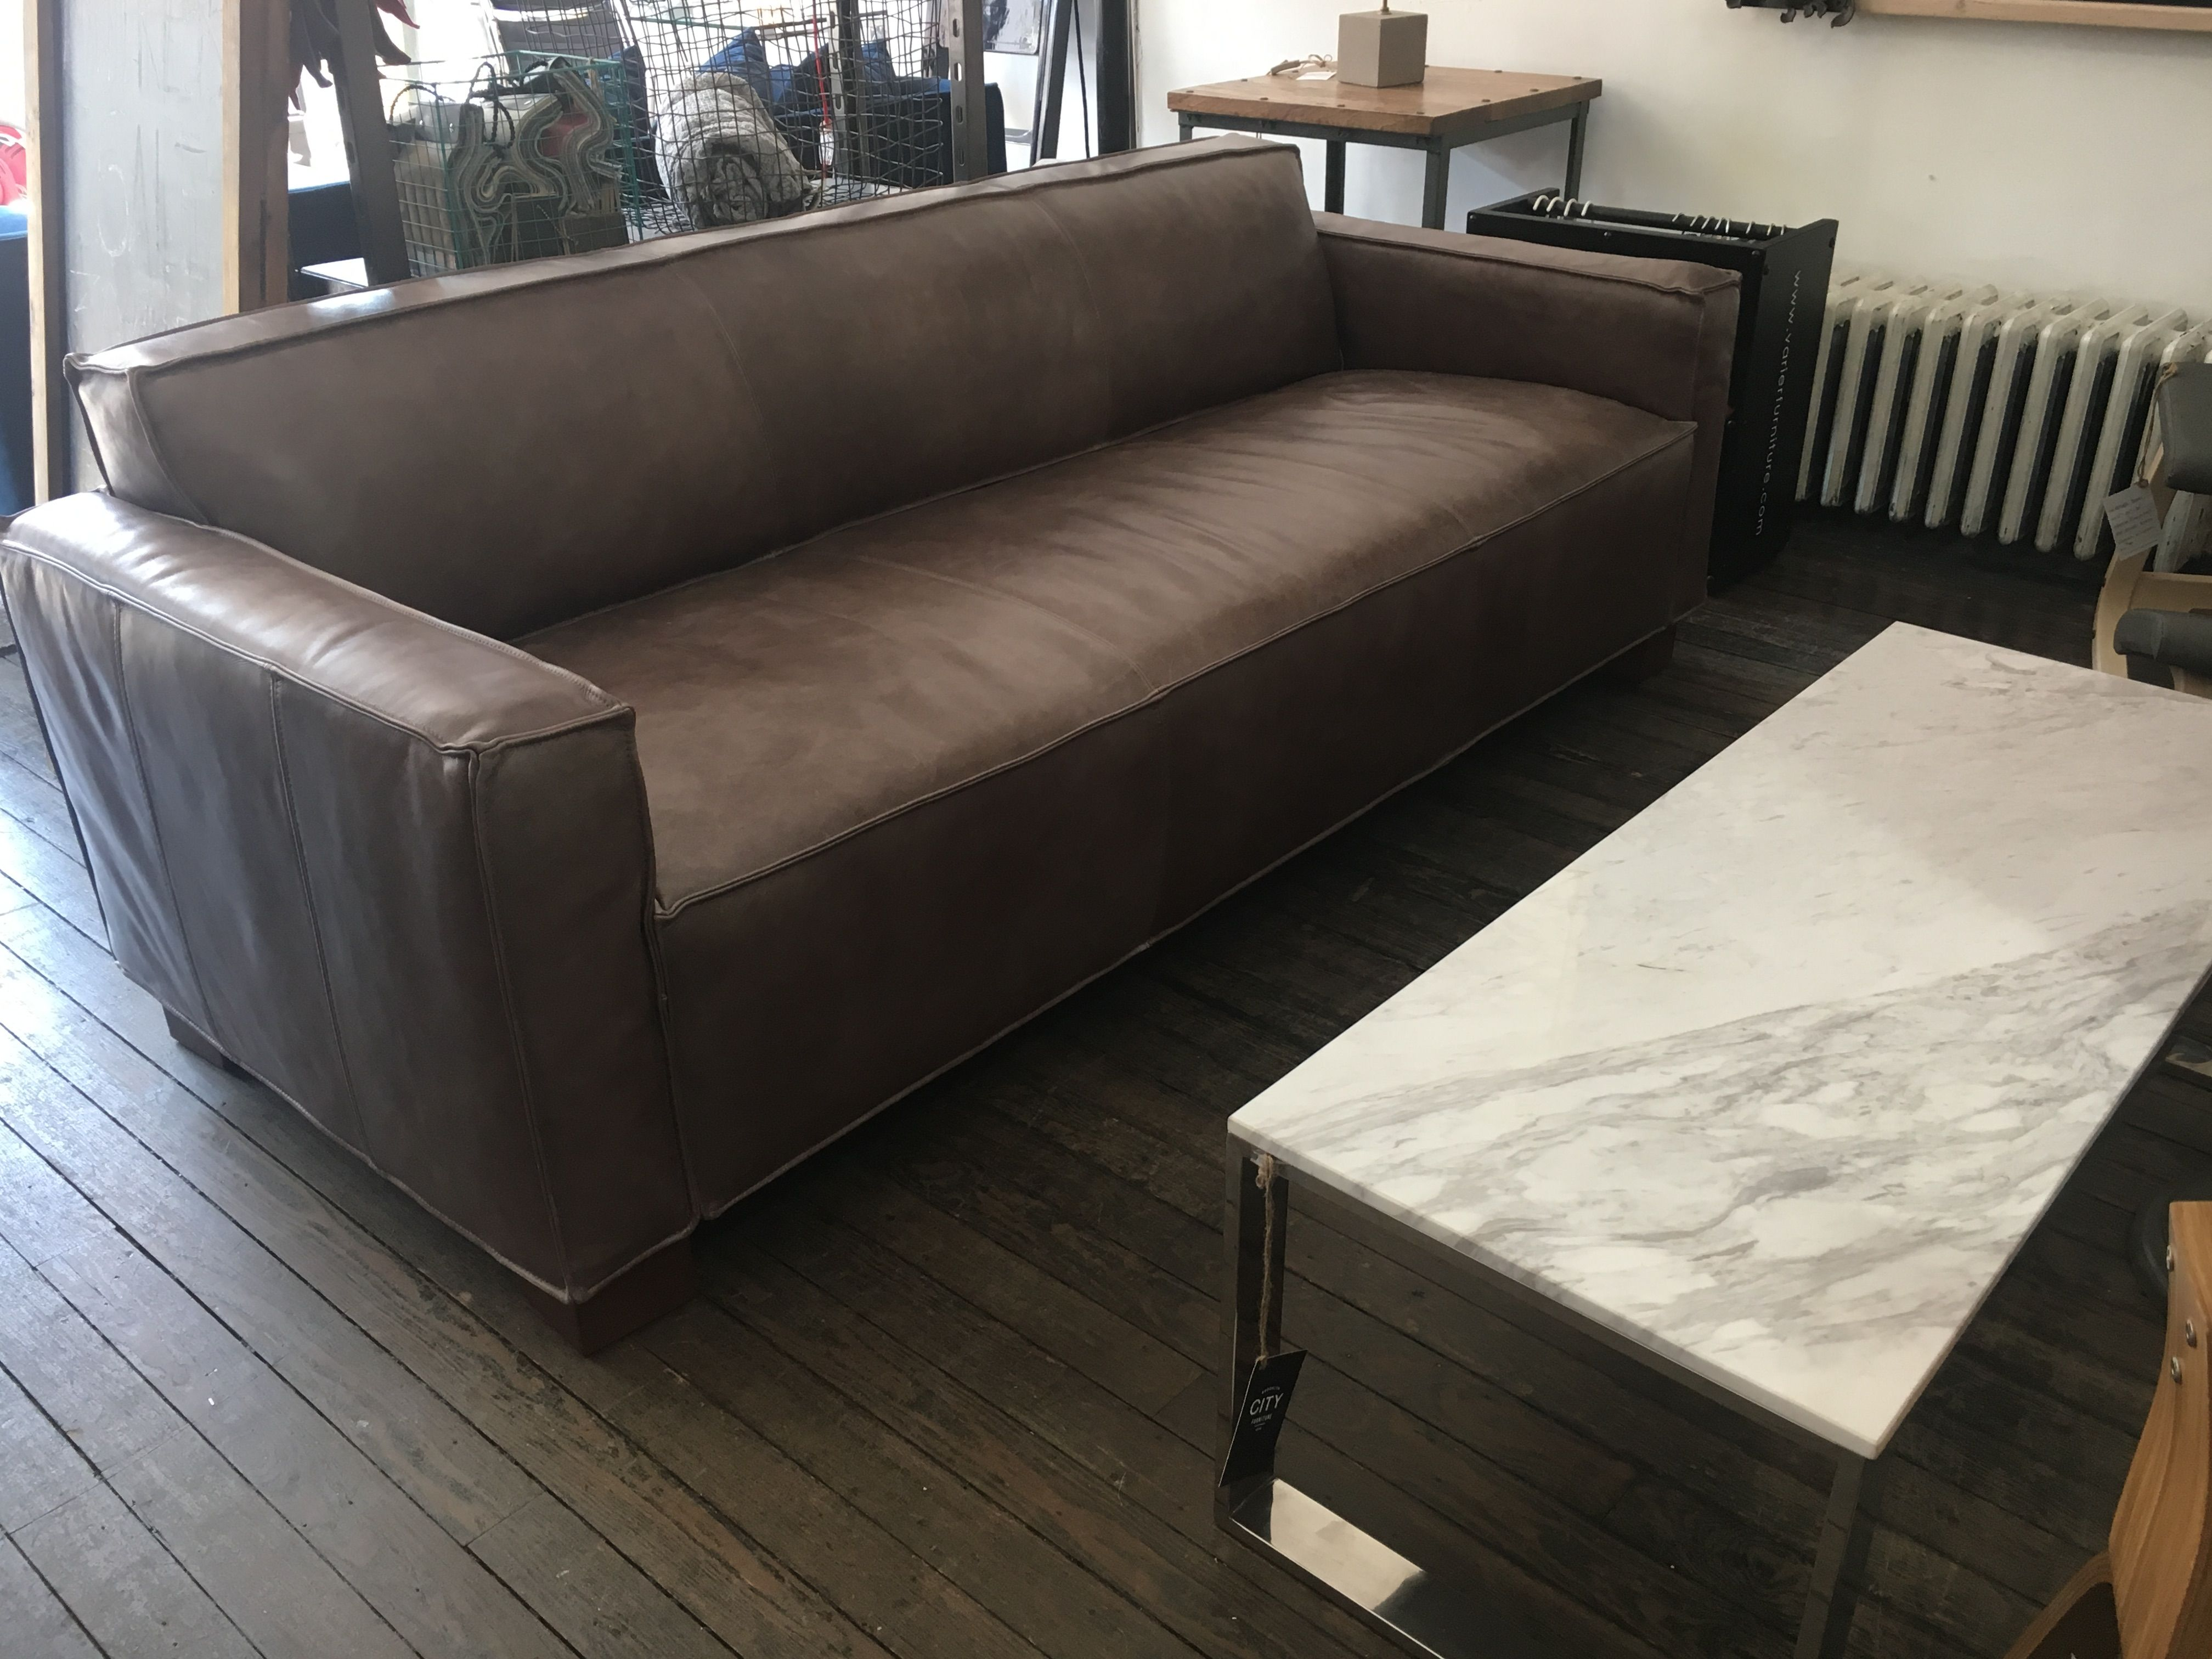 Brown leather cabot sofa by gus modern brooklyn city city furniture contemporary furniture